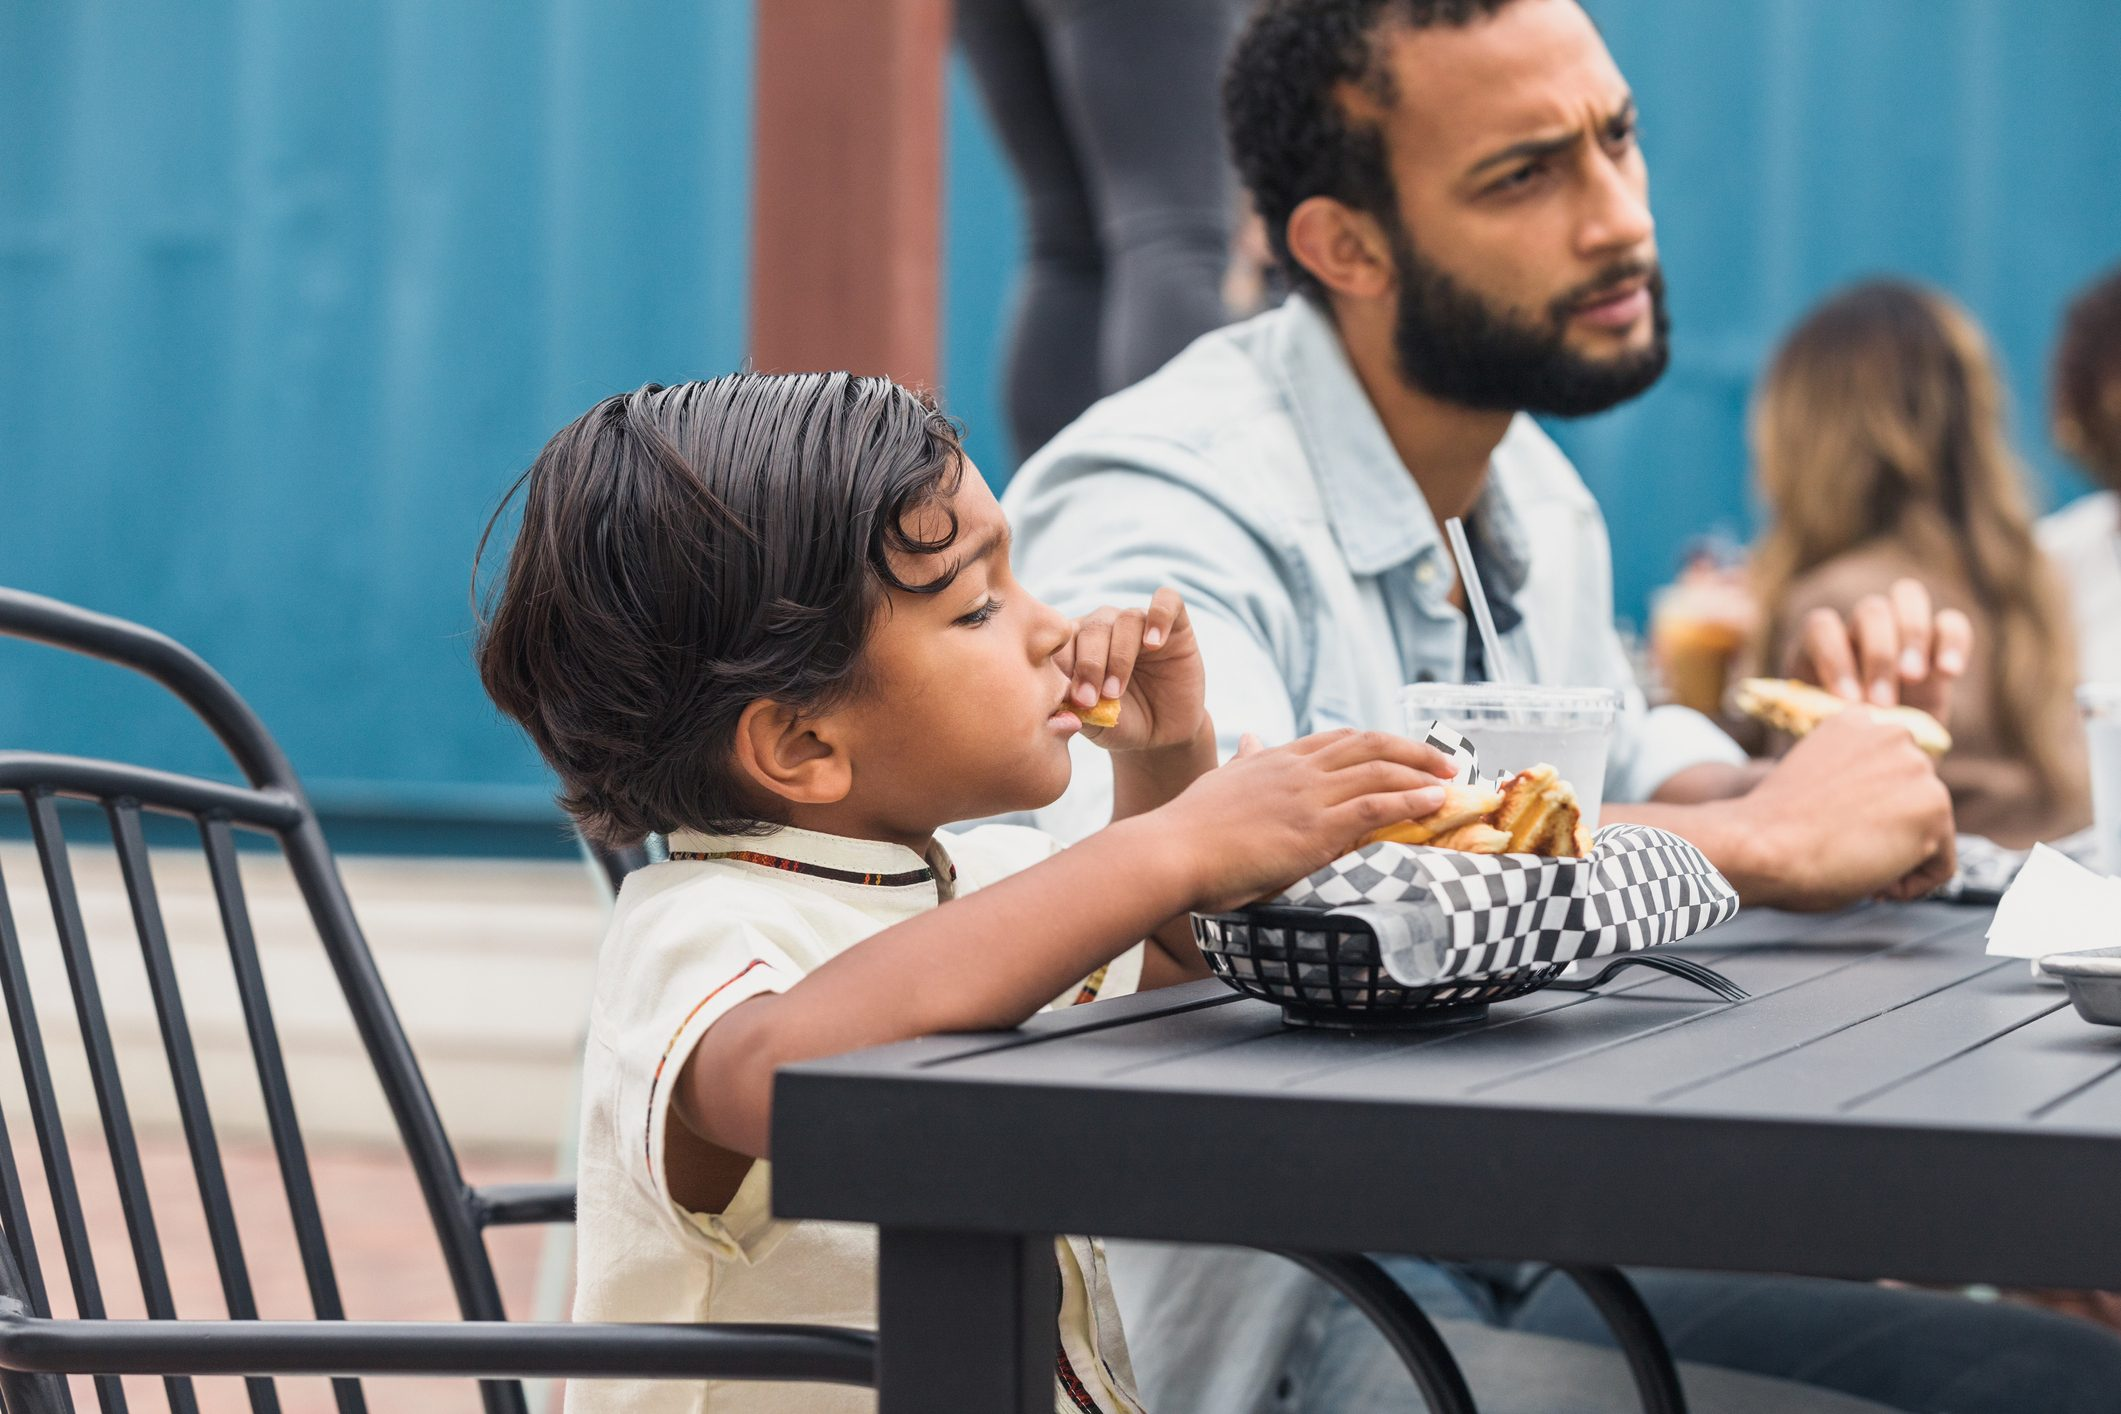 Boy eats food while dad chats at patio restaurant